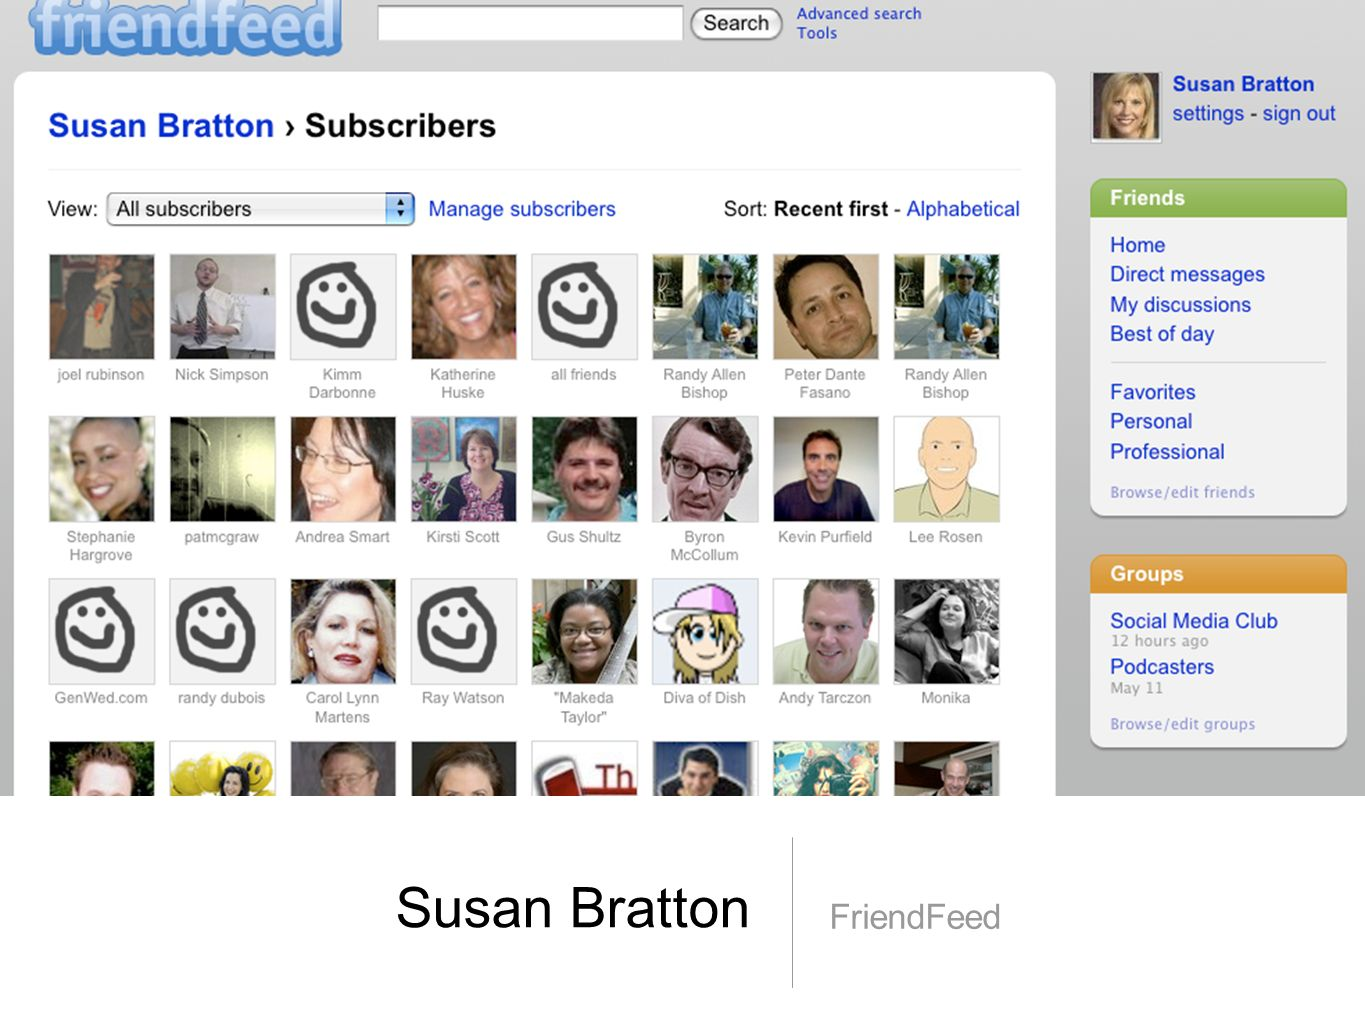 Susan Bratton FriendFeed